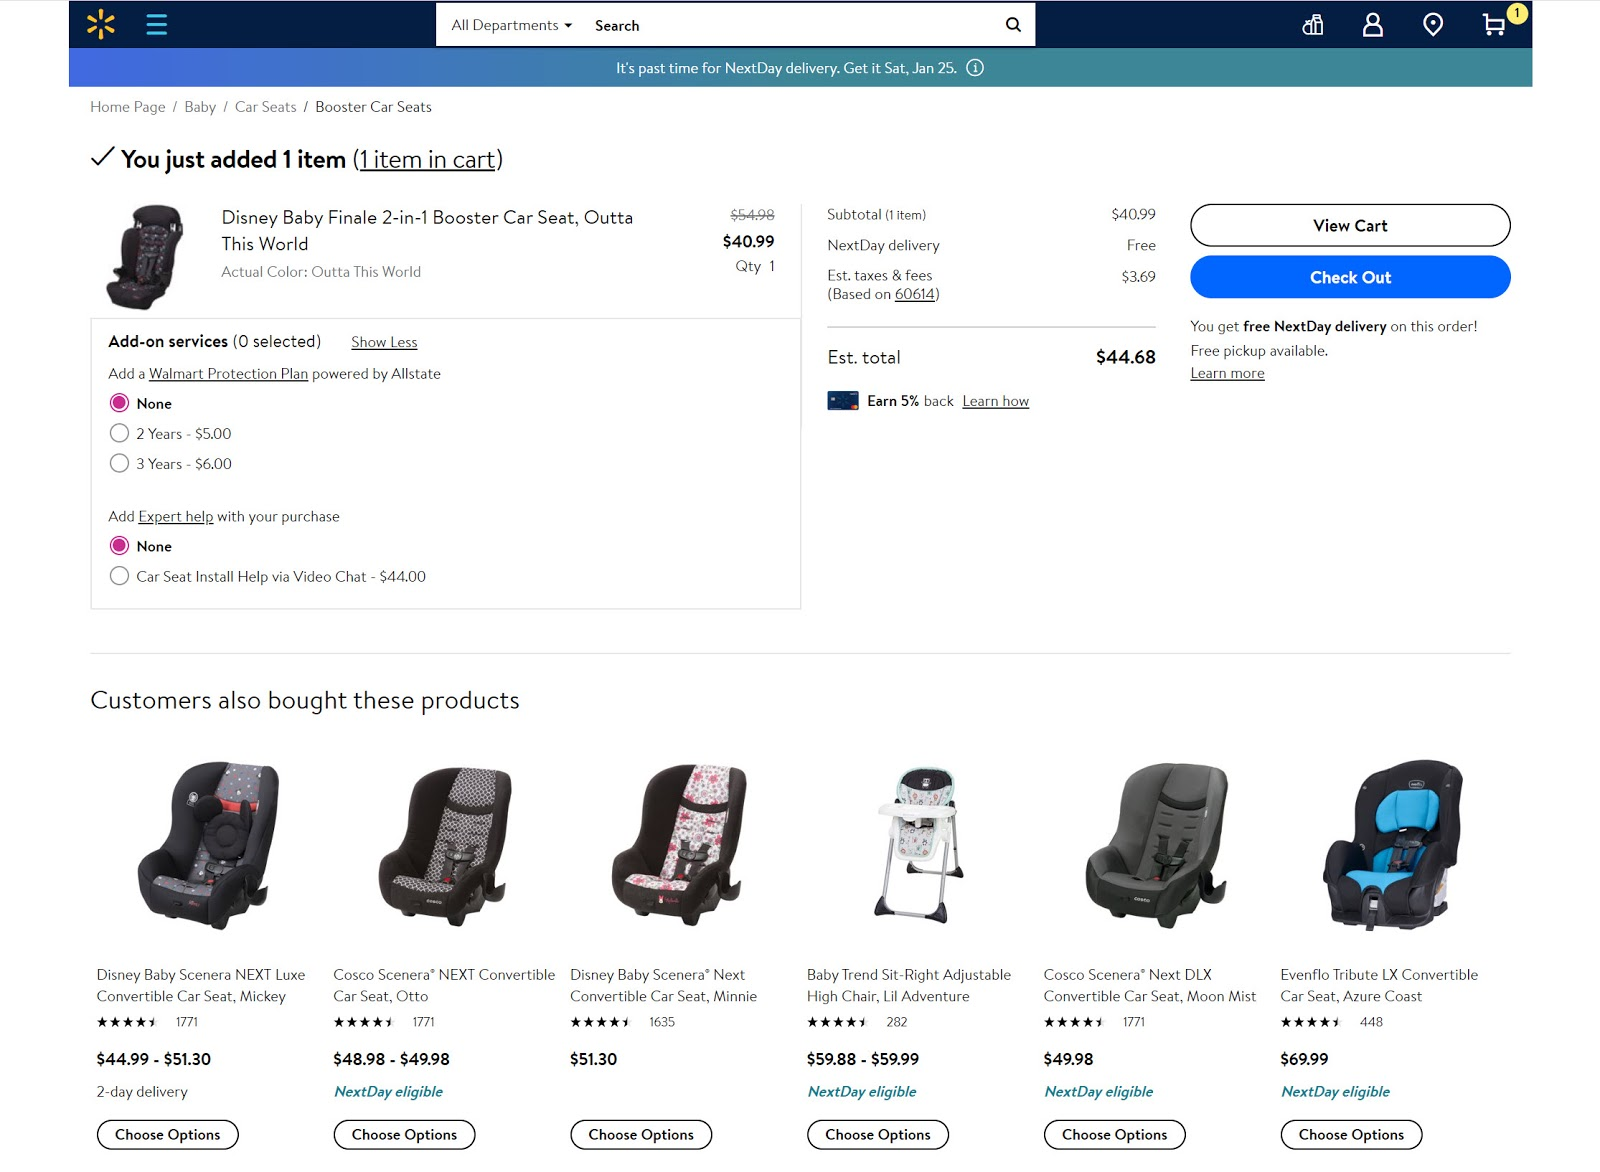 Example of recommended baby car seats on the Walmart website